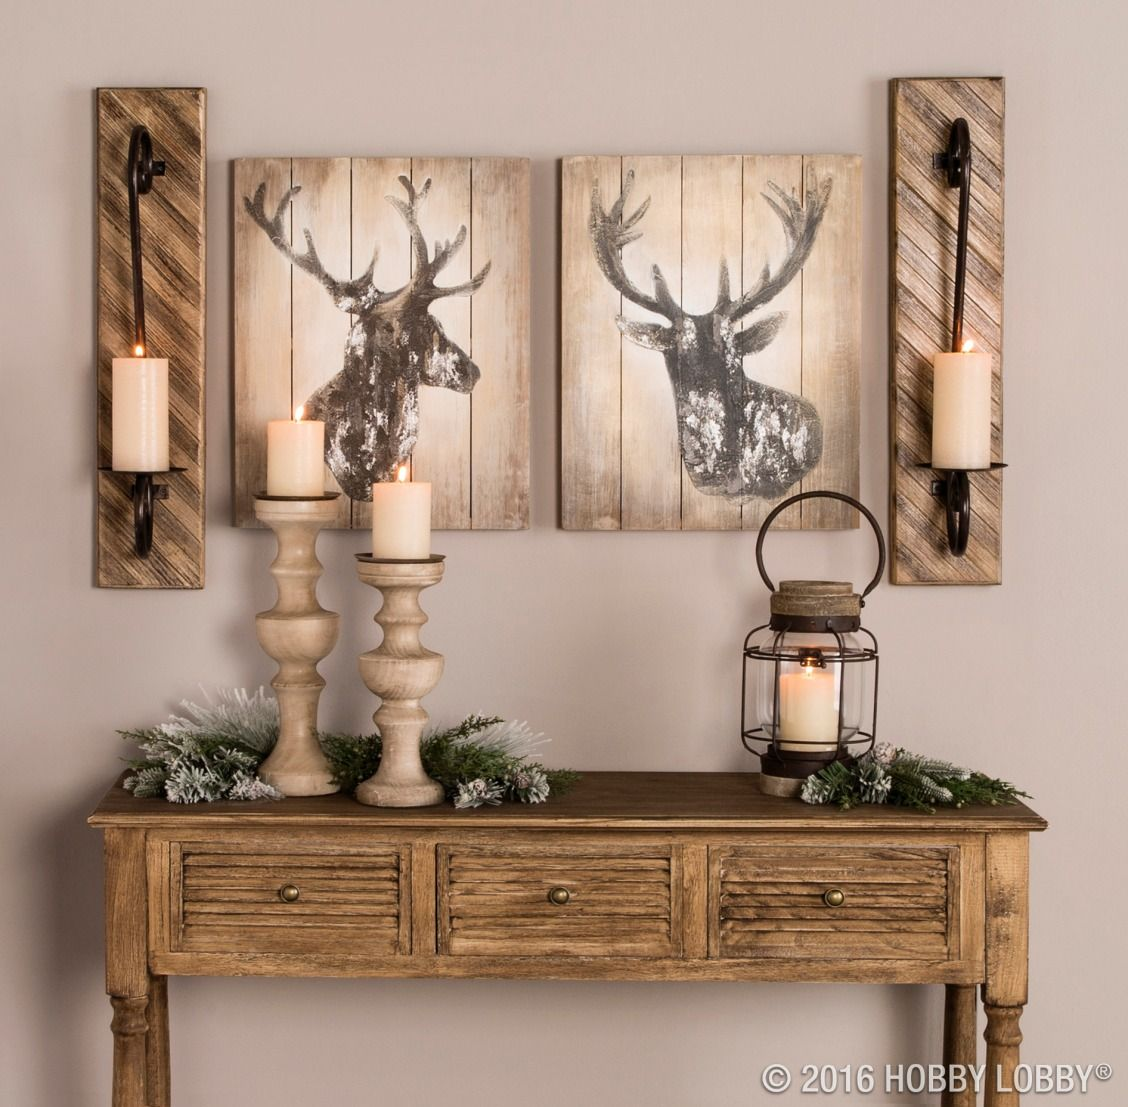 Pictures For House Decoration: Oh, Deer—winter Is Almost Here! Embrace The Season By